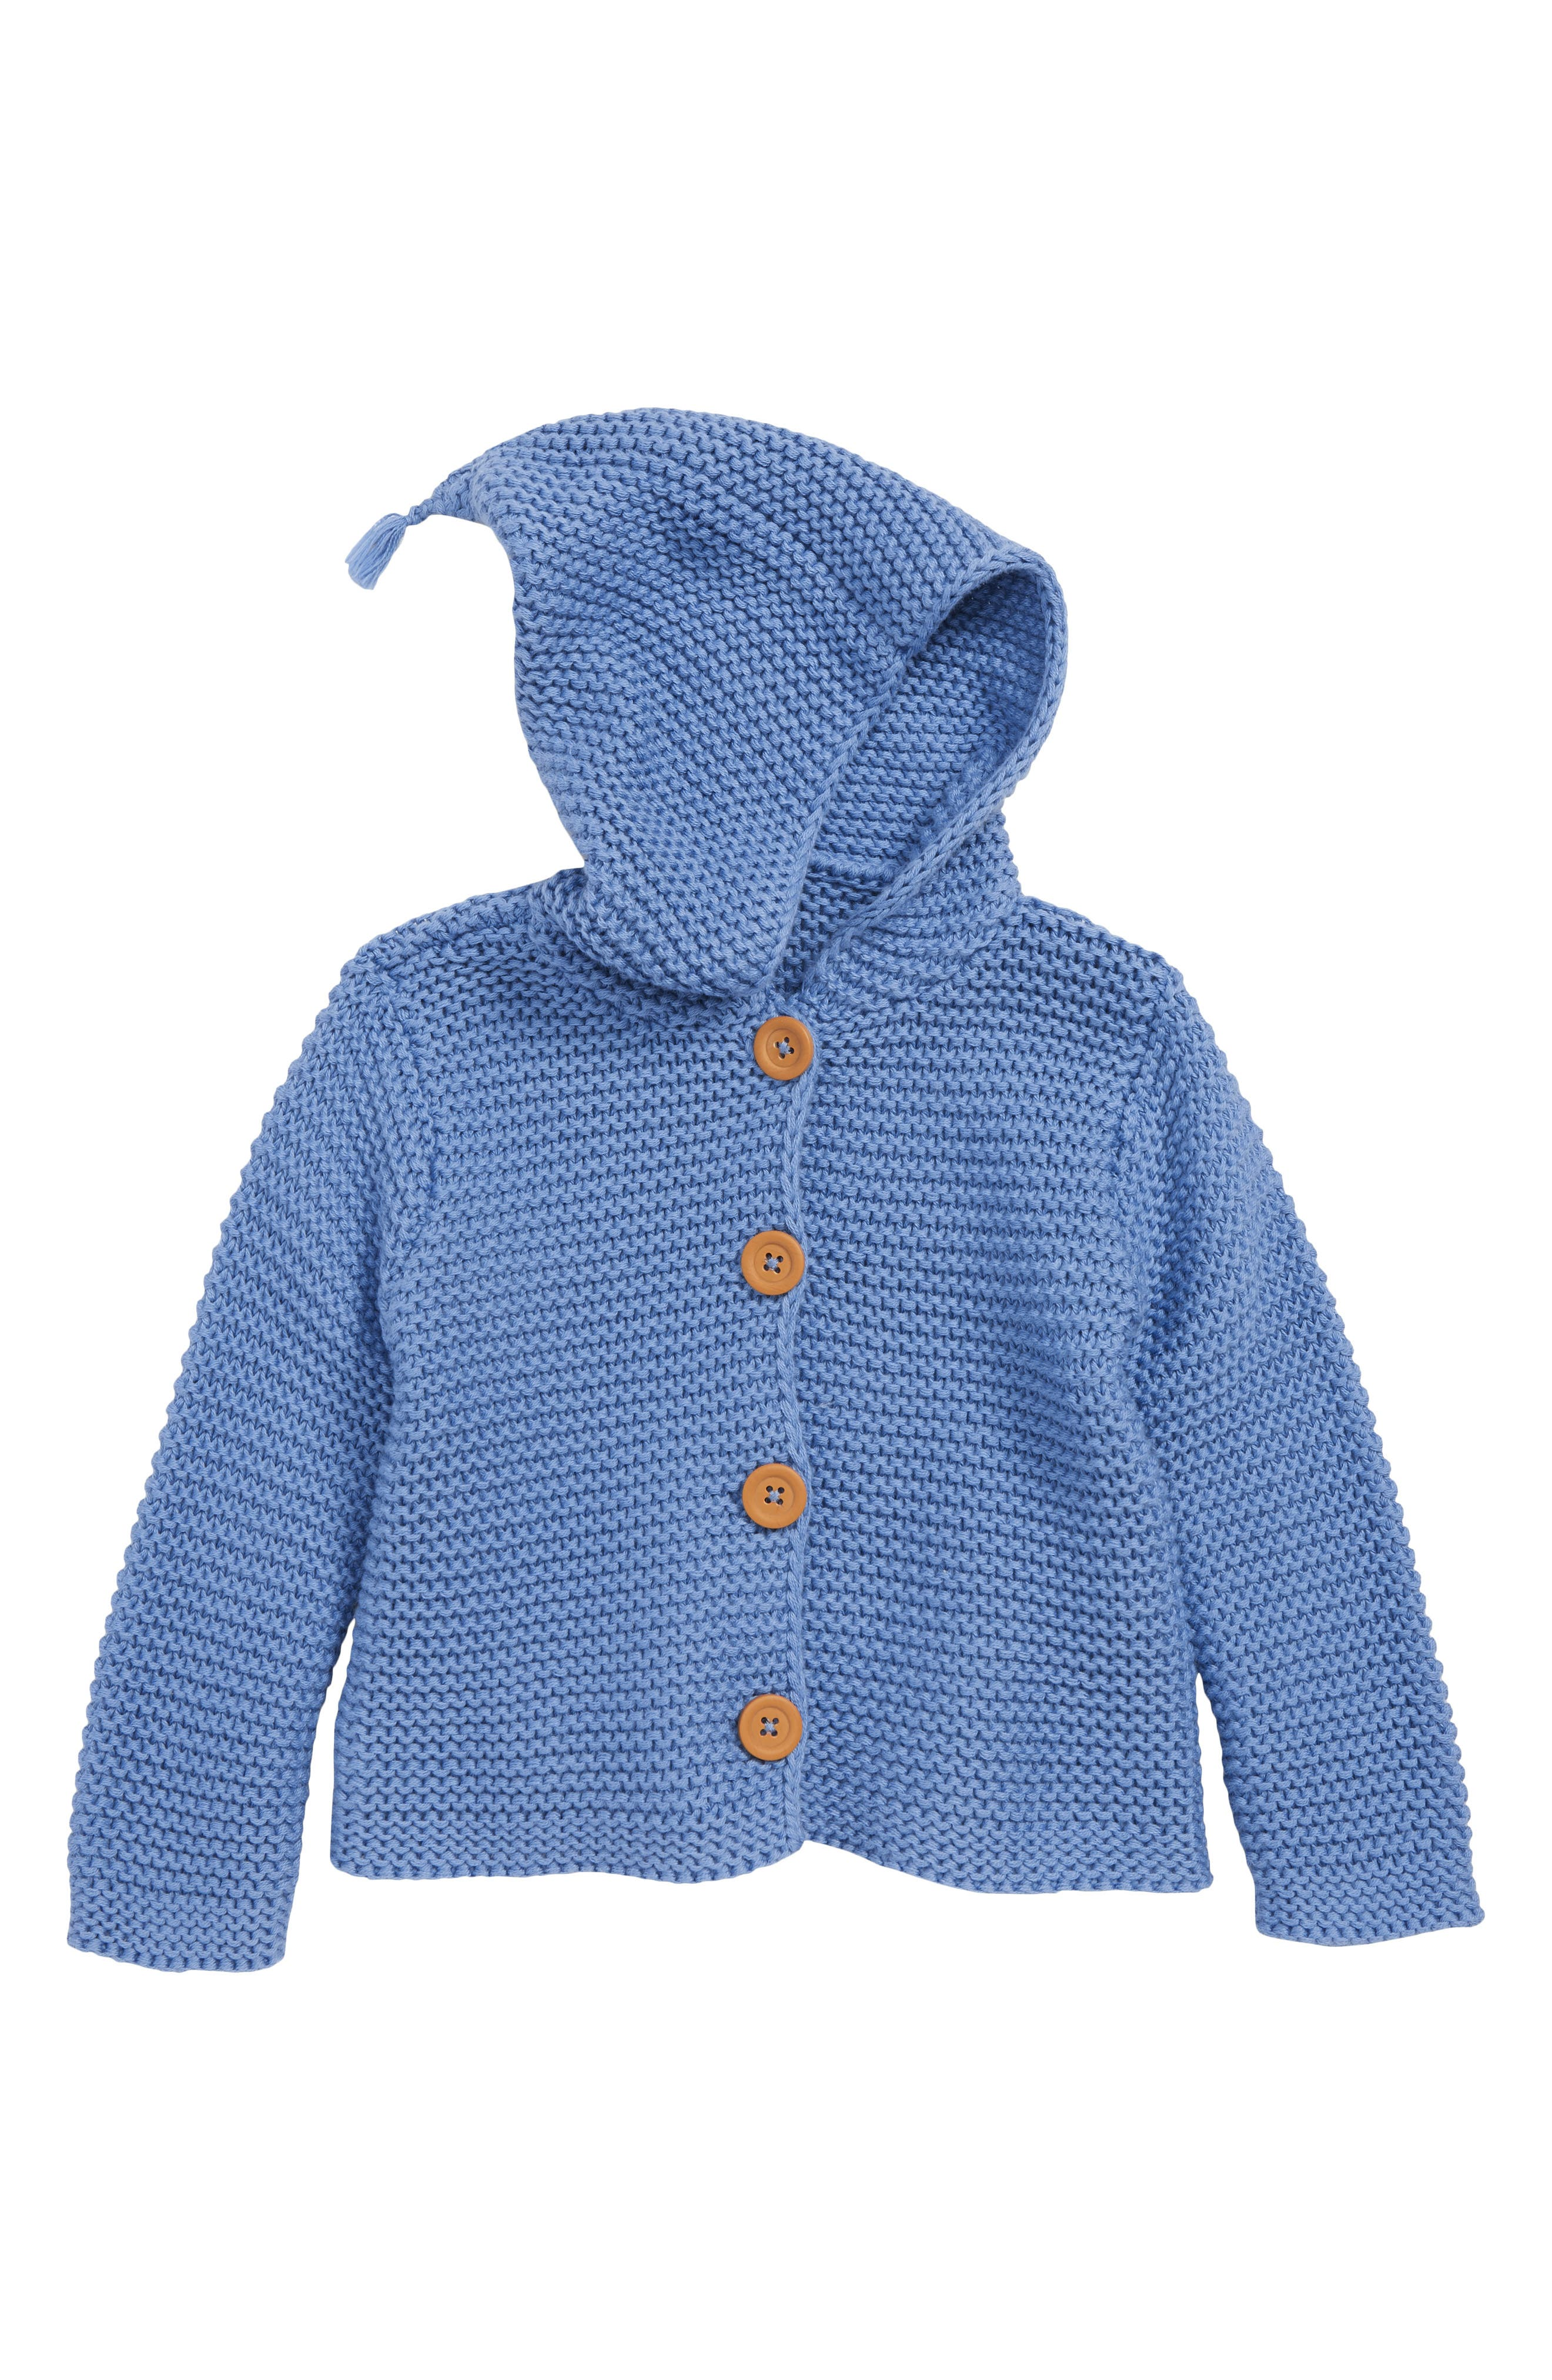 NORDSTROM BABY, Lofty Organic Cotton Hooded Cardigan, Main thumbnail 1, color, BLUE RIVIERA